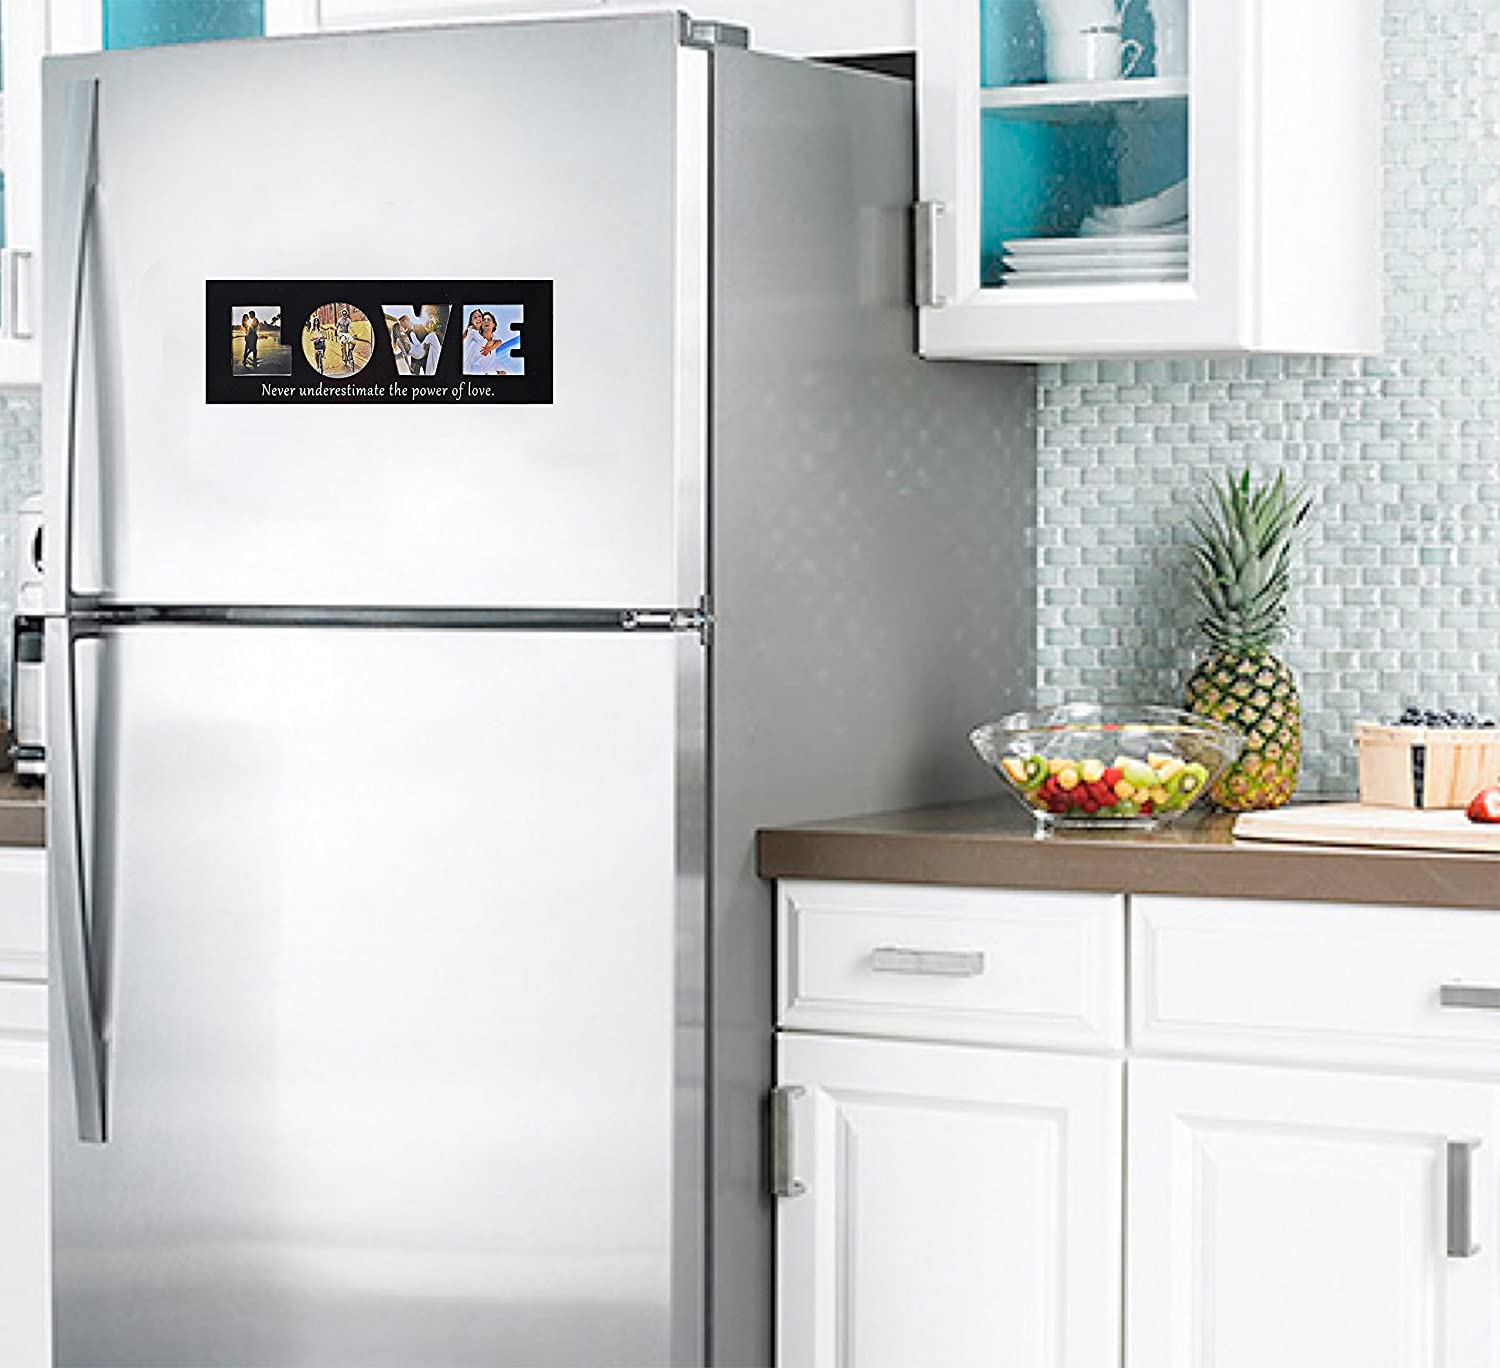 Amazon.com - FAMILY Fridge Magnets - Magnetic Picture Frame ...